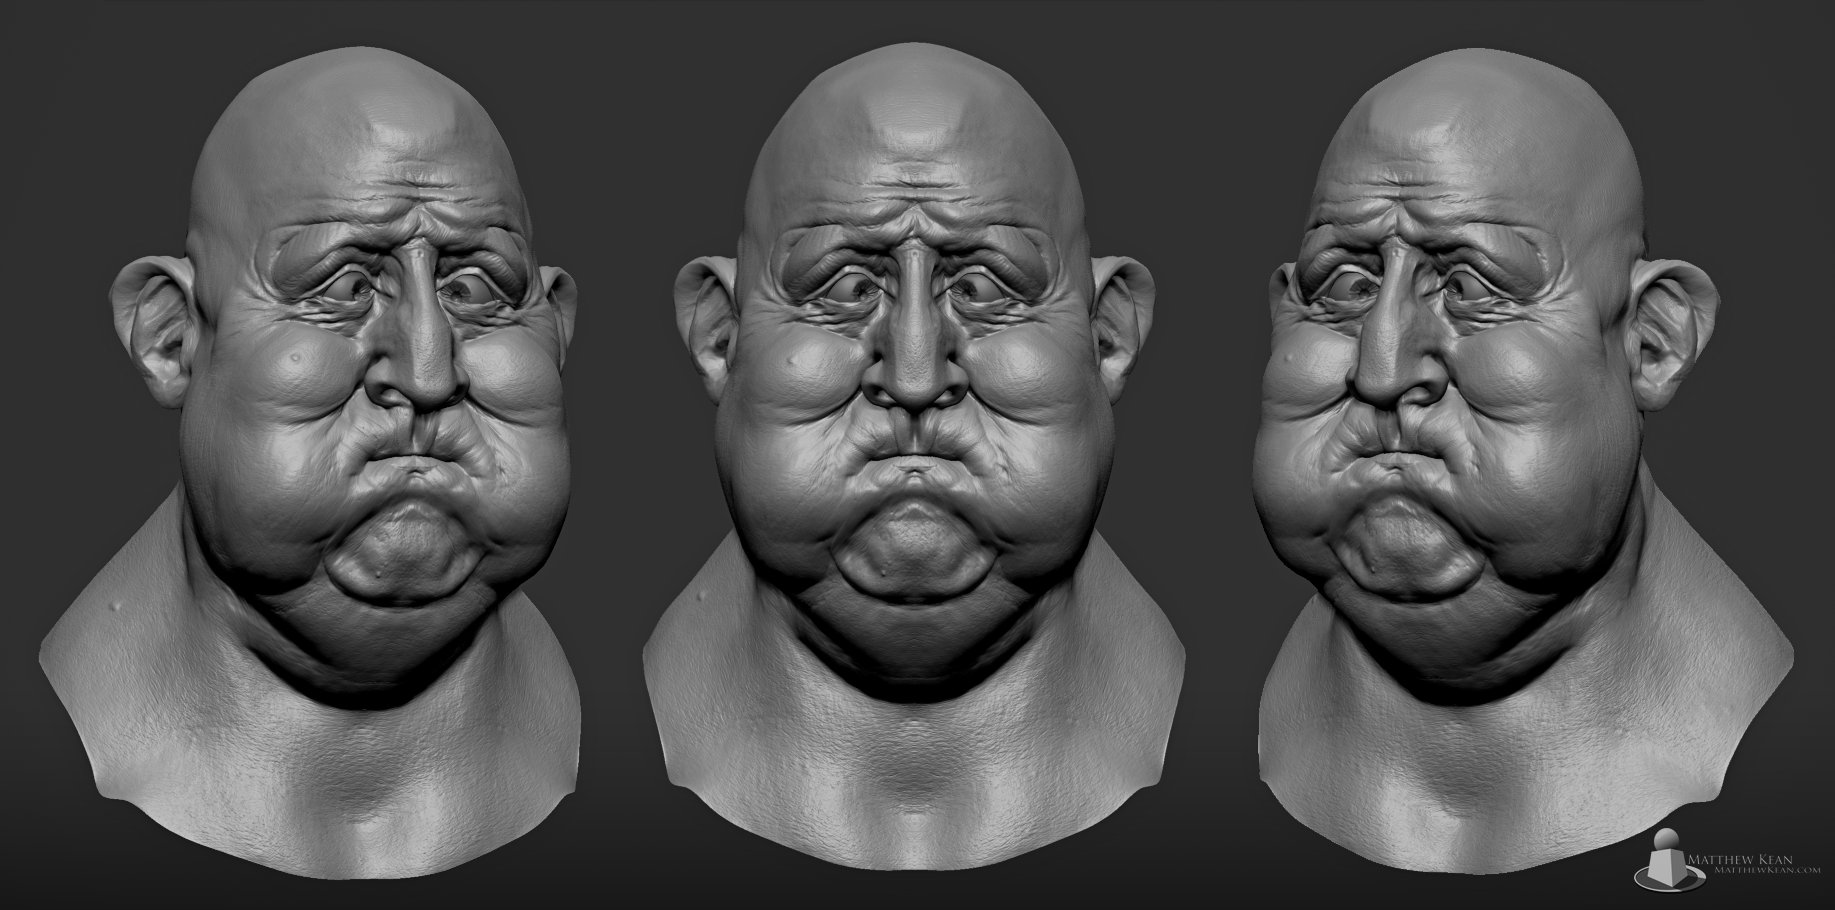 Matthew kean zbrush document6